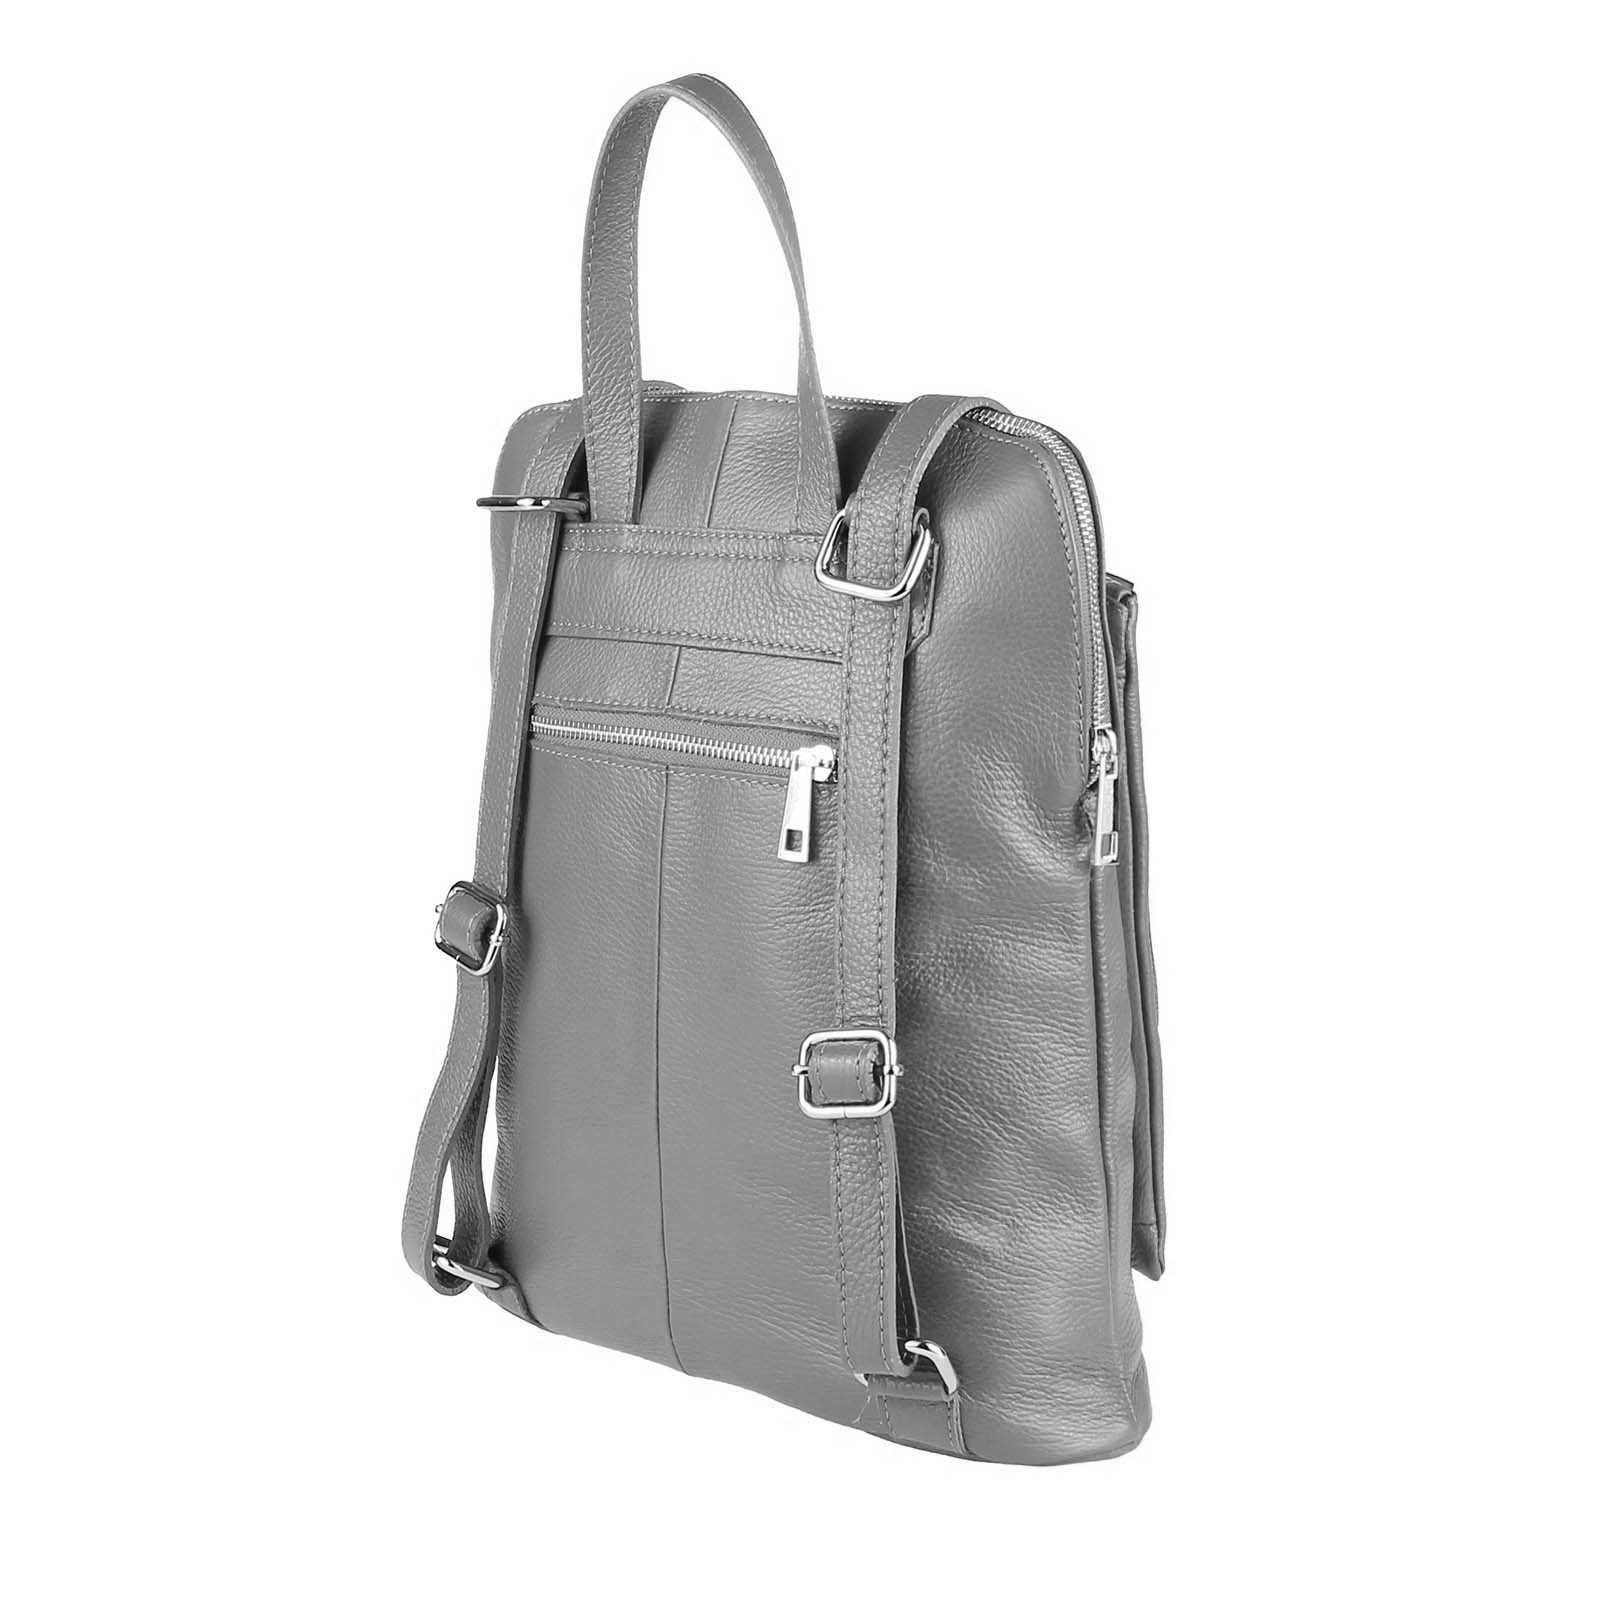 ITALy-DAMEN-LEDER-Reise-RUCKSACK-SchulterTasche-Shopper-Backpack-Ledertasche-BAG Indexbild 60